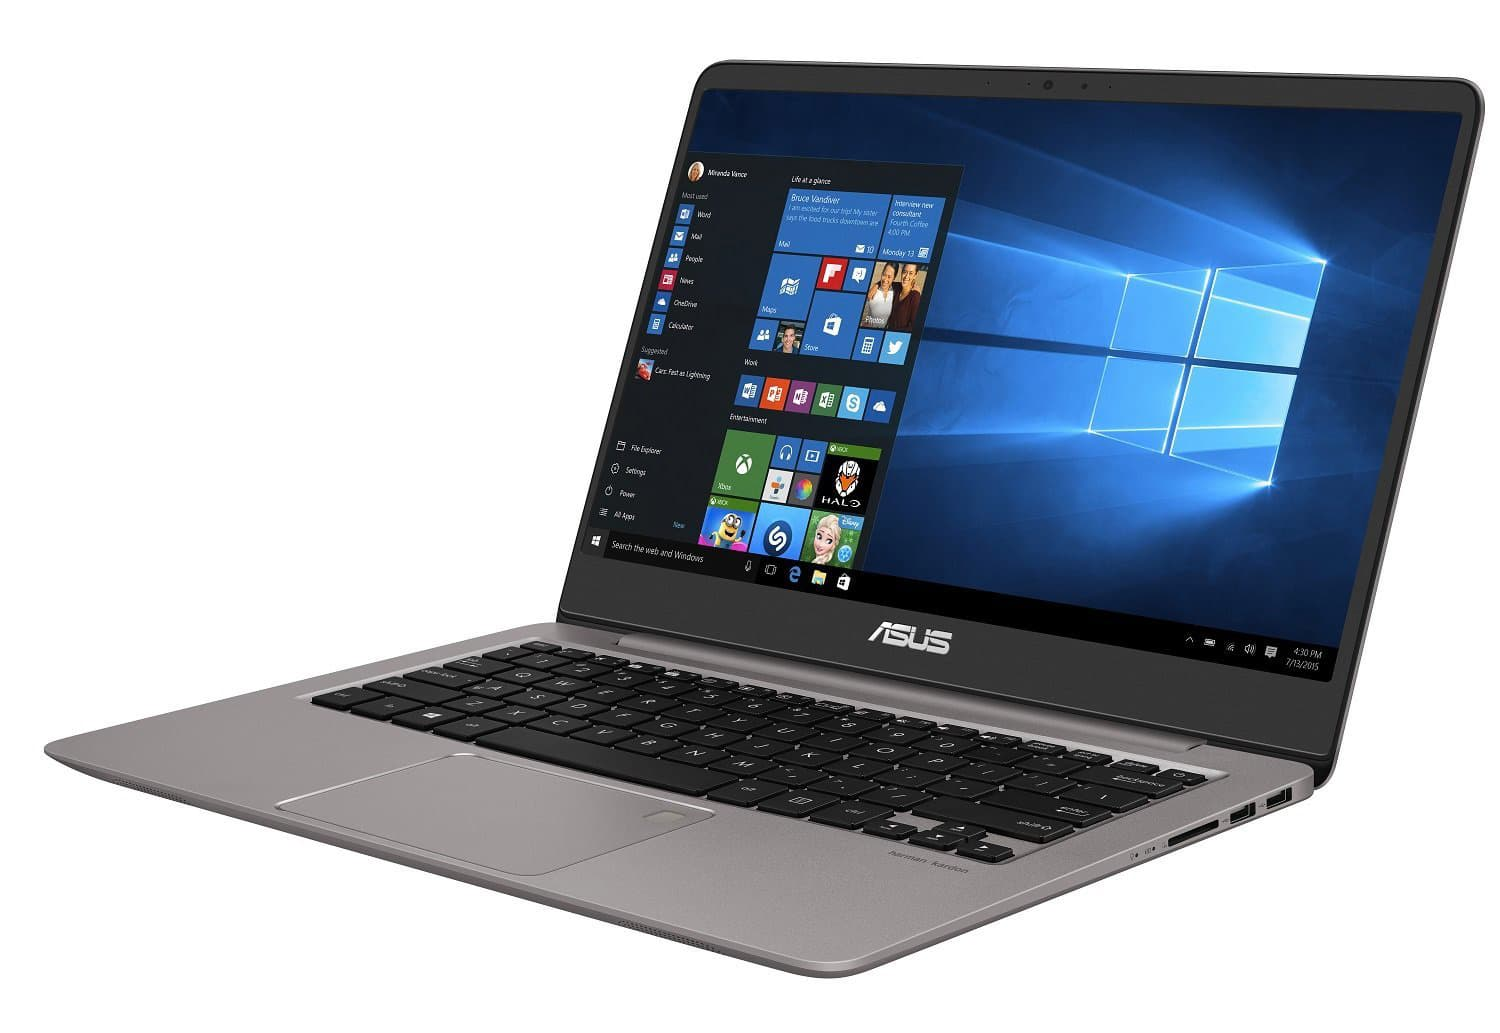 Asus Zenbook UX410UA-GV099T, Ultrabook 14 pouces Full IPS SSD i5 Kaby 799€